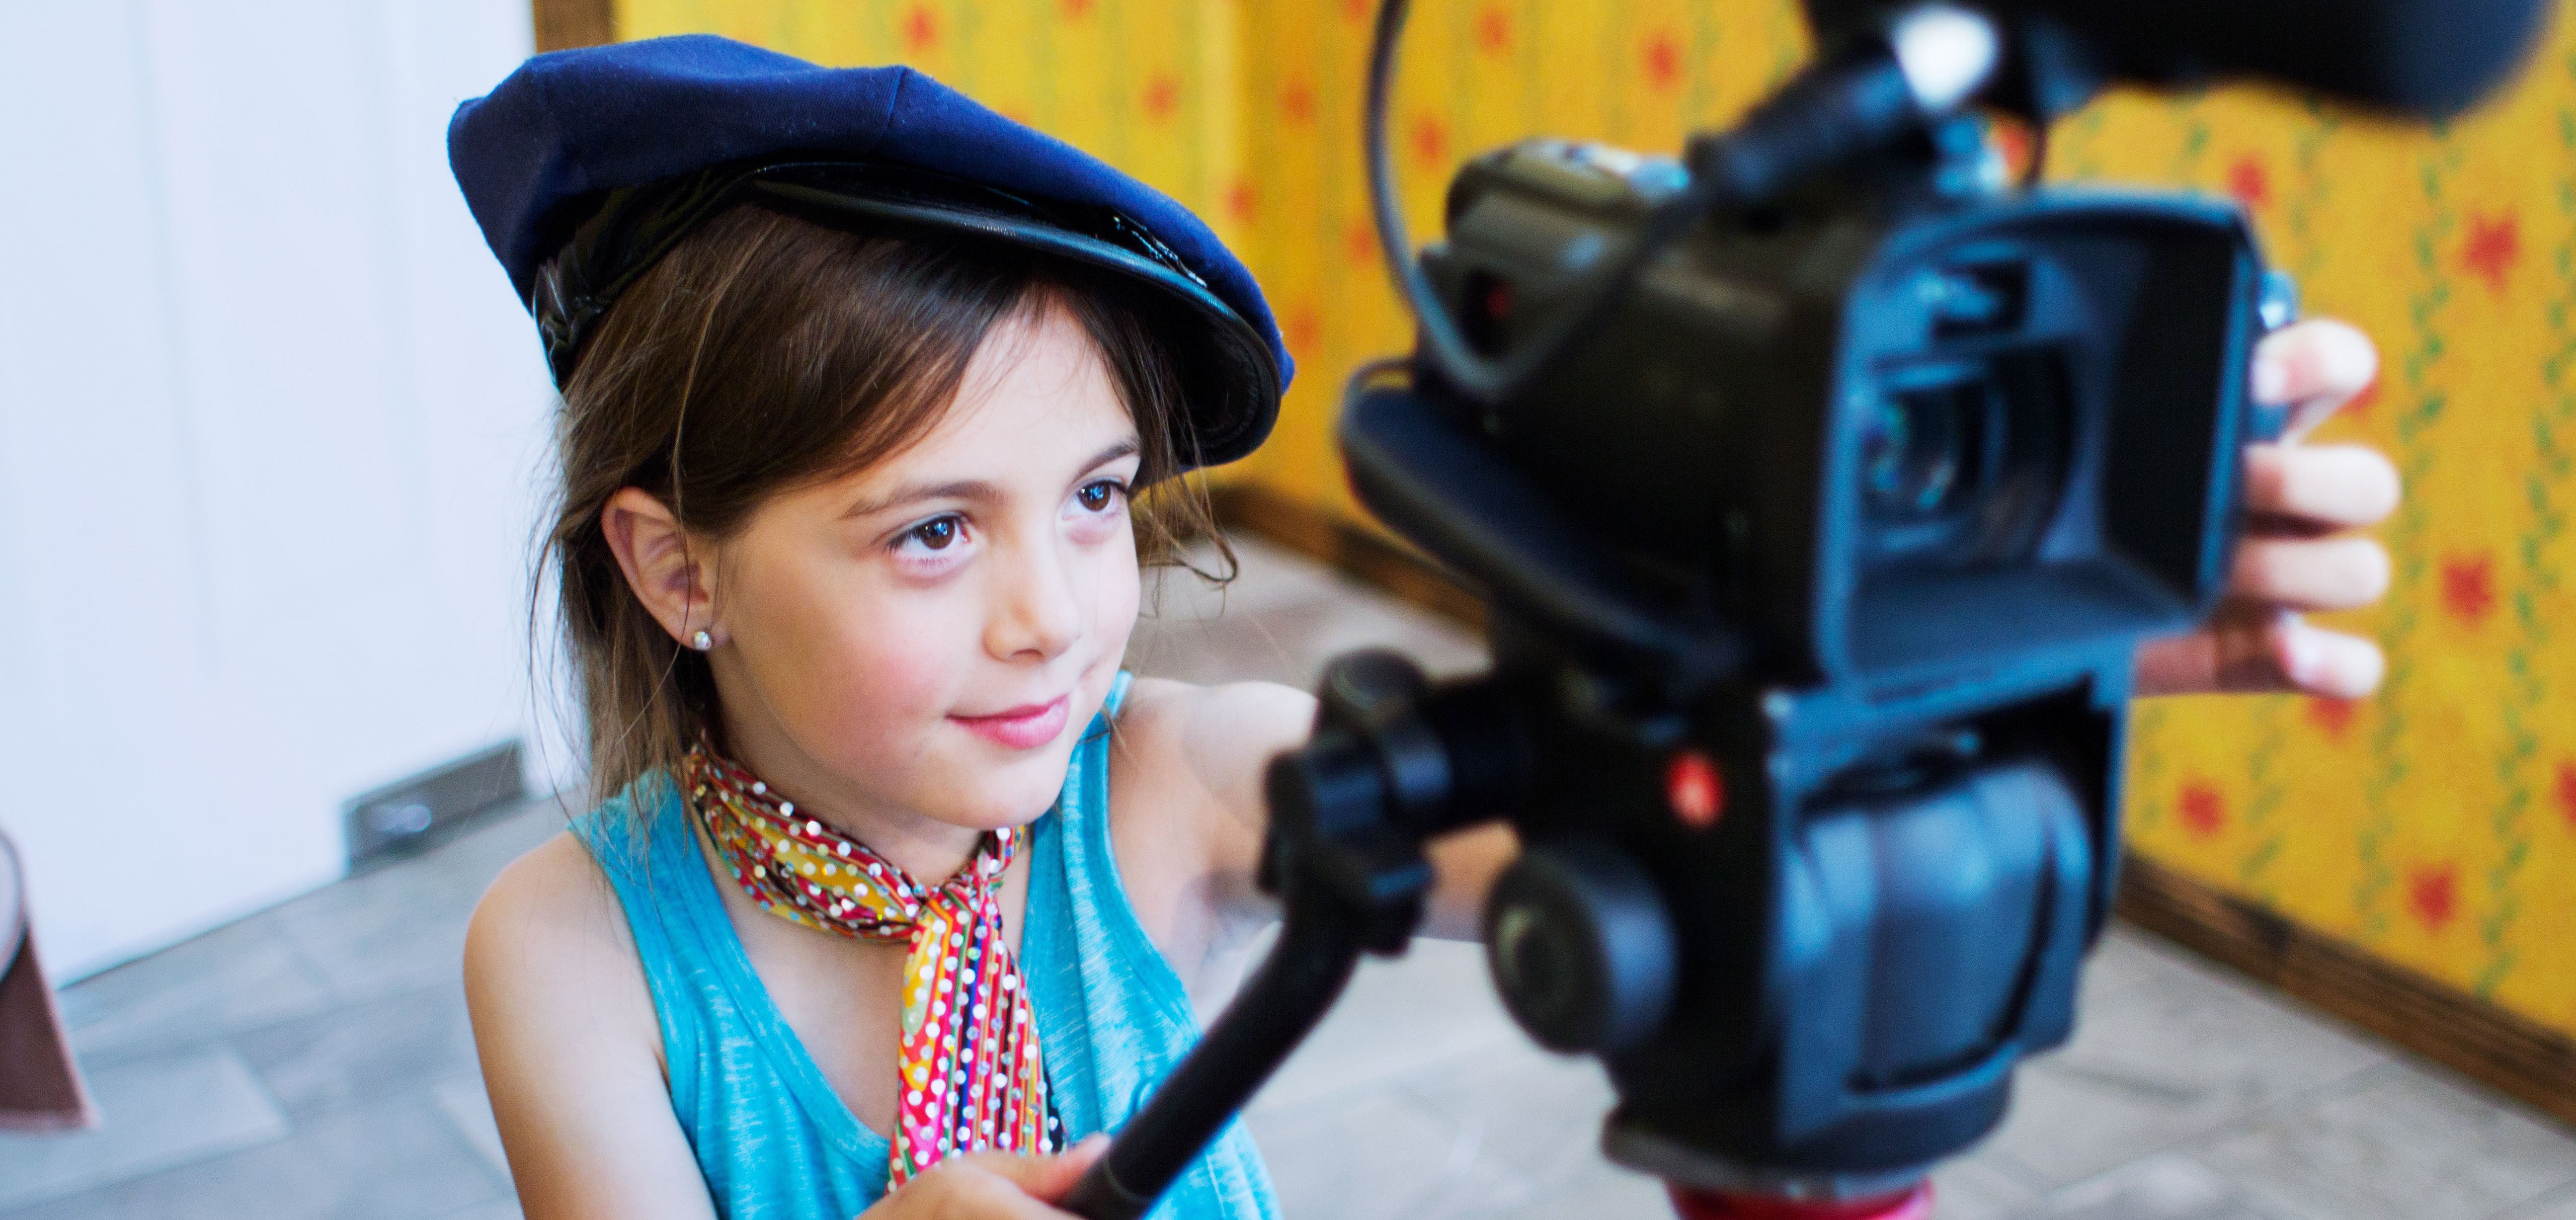 A girl using a video camera during an ACMI public program in 2019